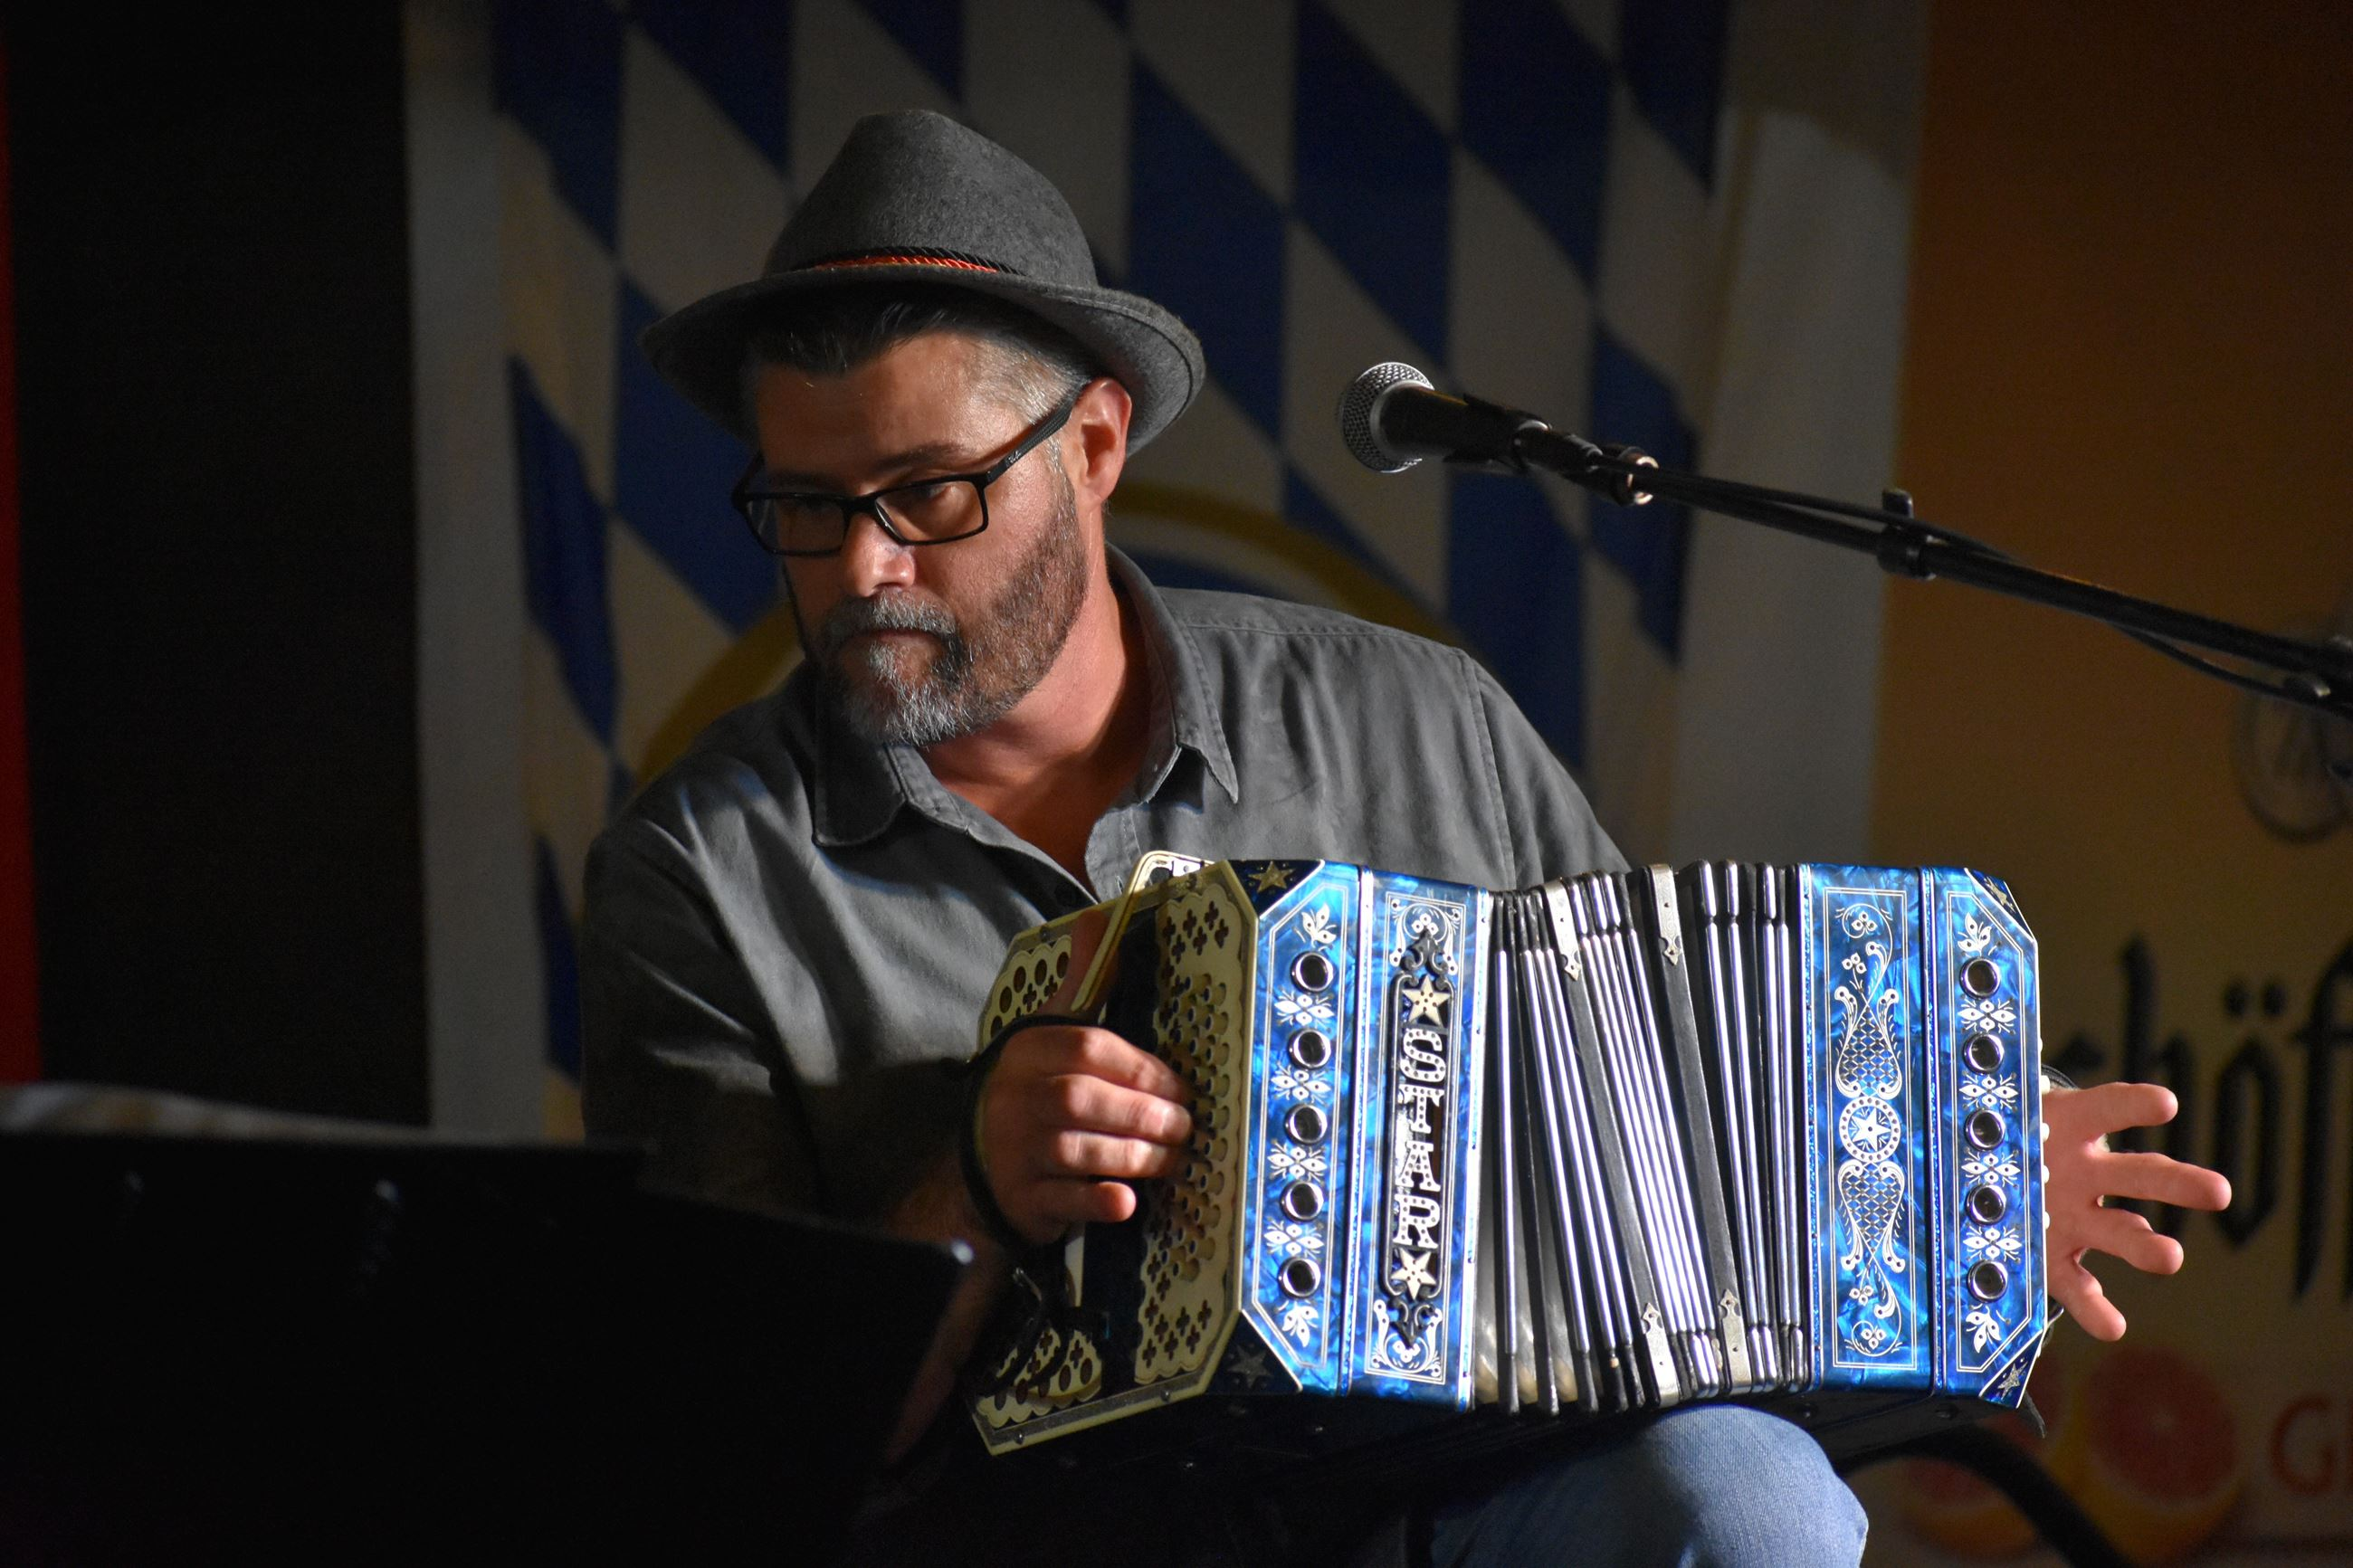 Man playing an accordion at Oktoberfest